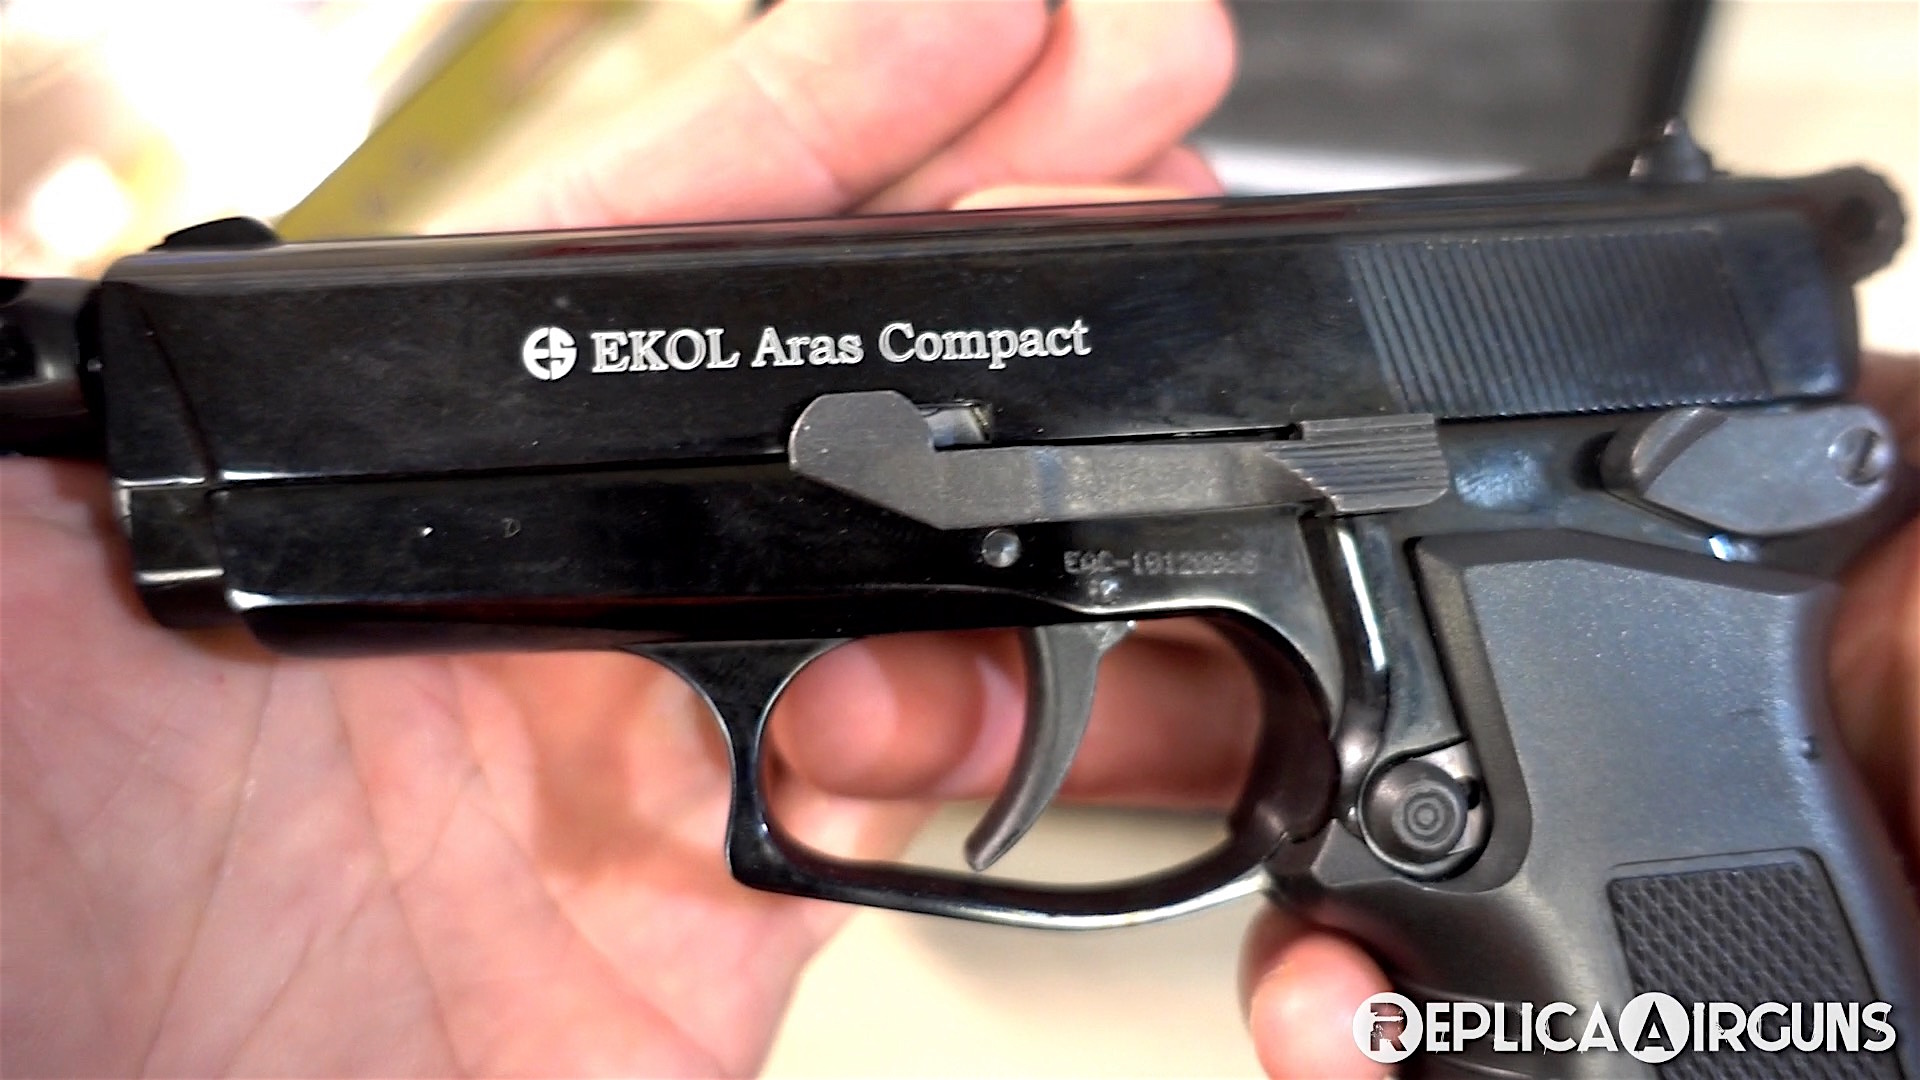 Replica Airguns Silent Auction EKOL ARAS Compact Left Side.jpg